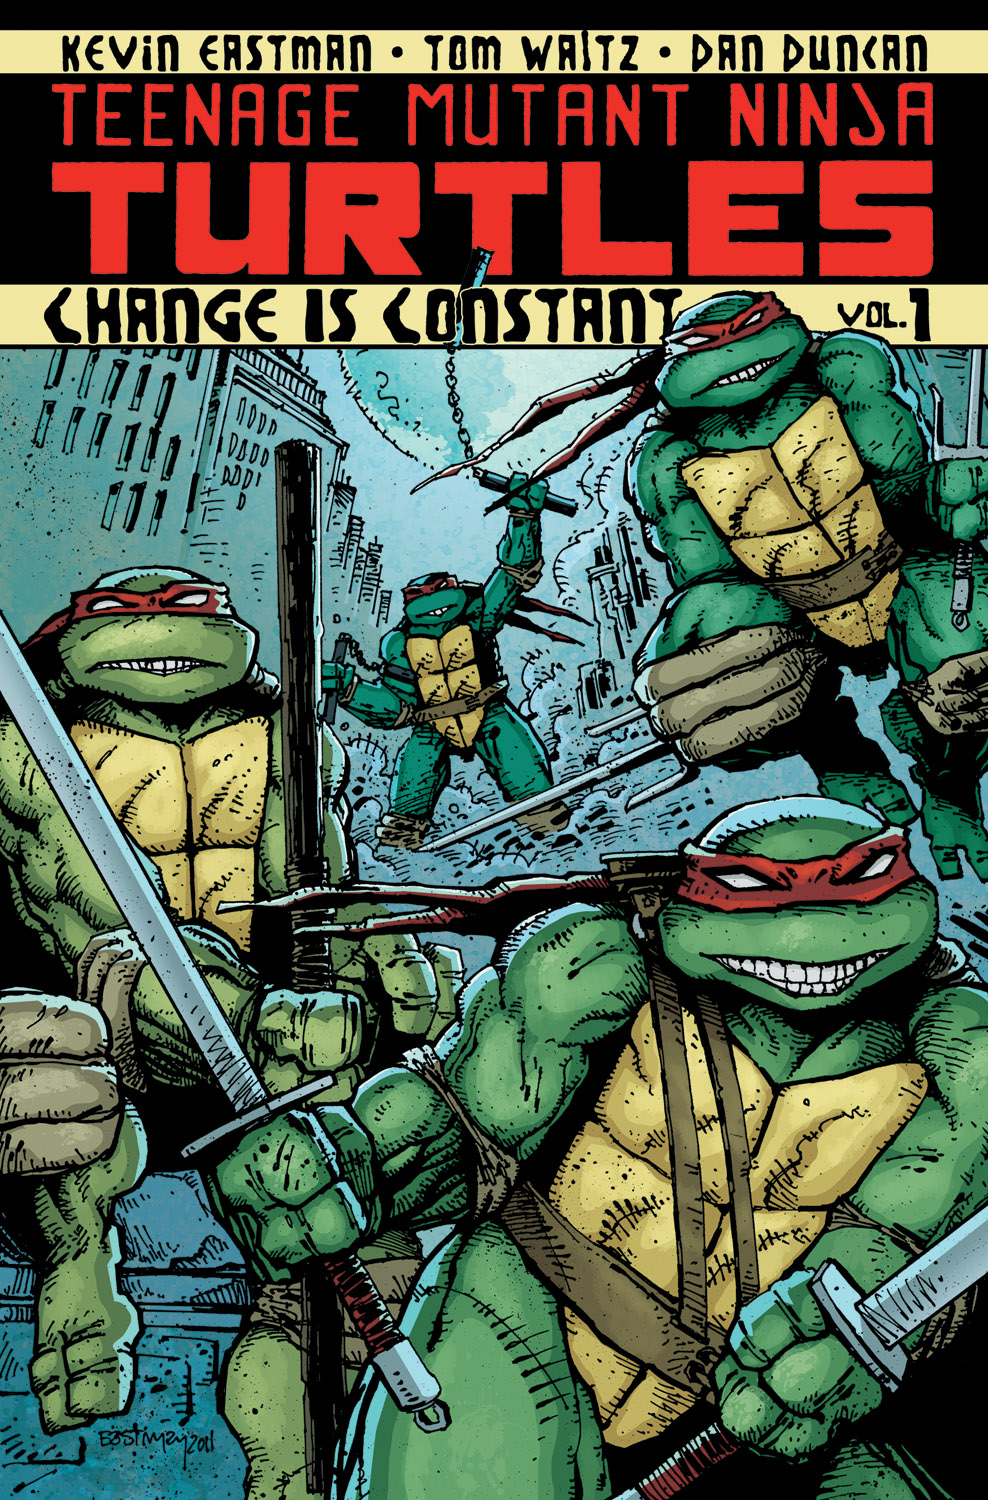 Teenange Mutant Ninja Turtles Vol 1